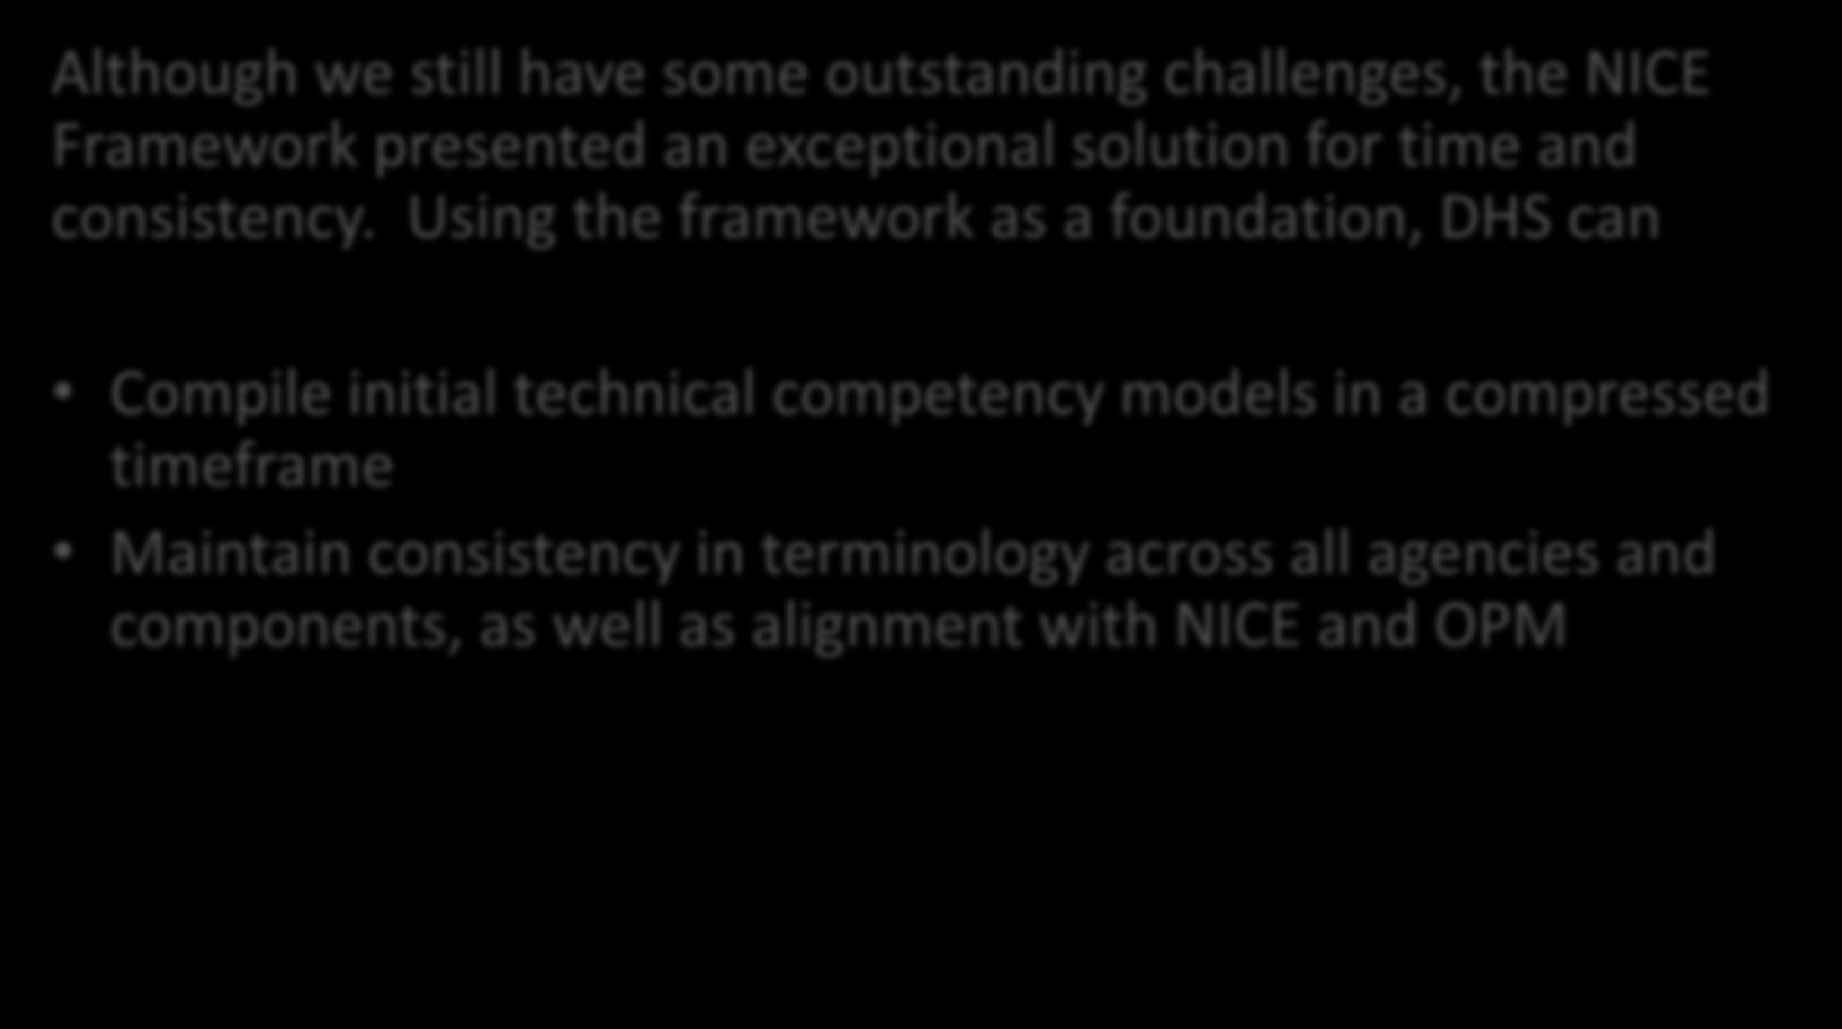 A NICE Solution Although we still have some outstanding challenges, the NICE Framework presented an exceptional solution for time and consistency.